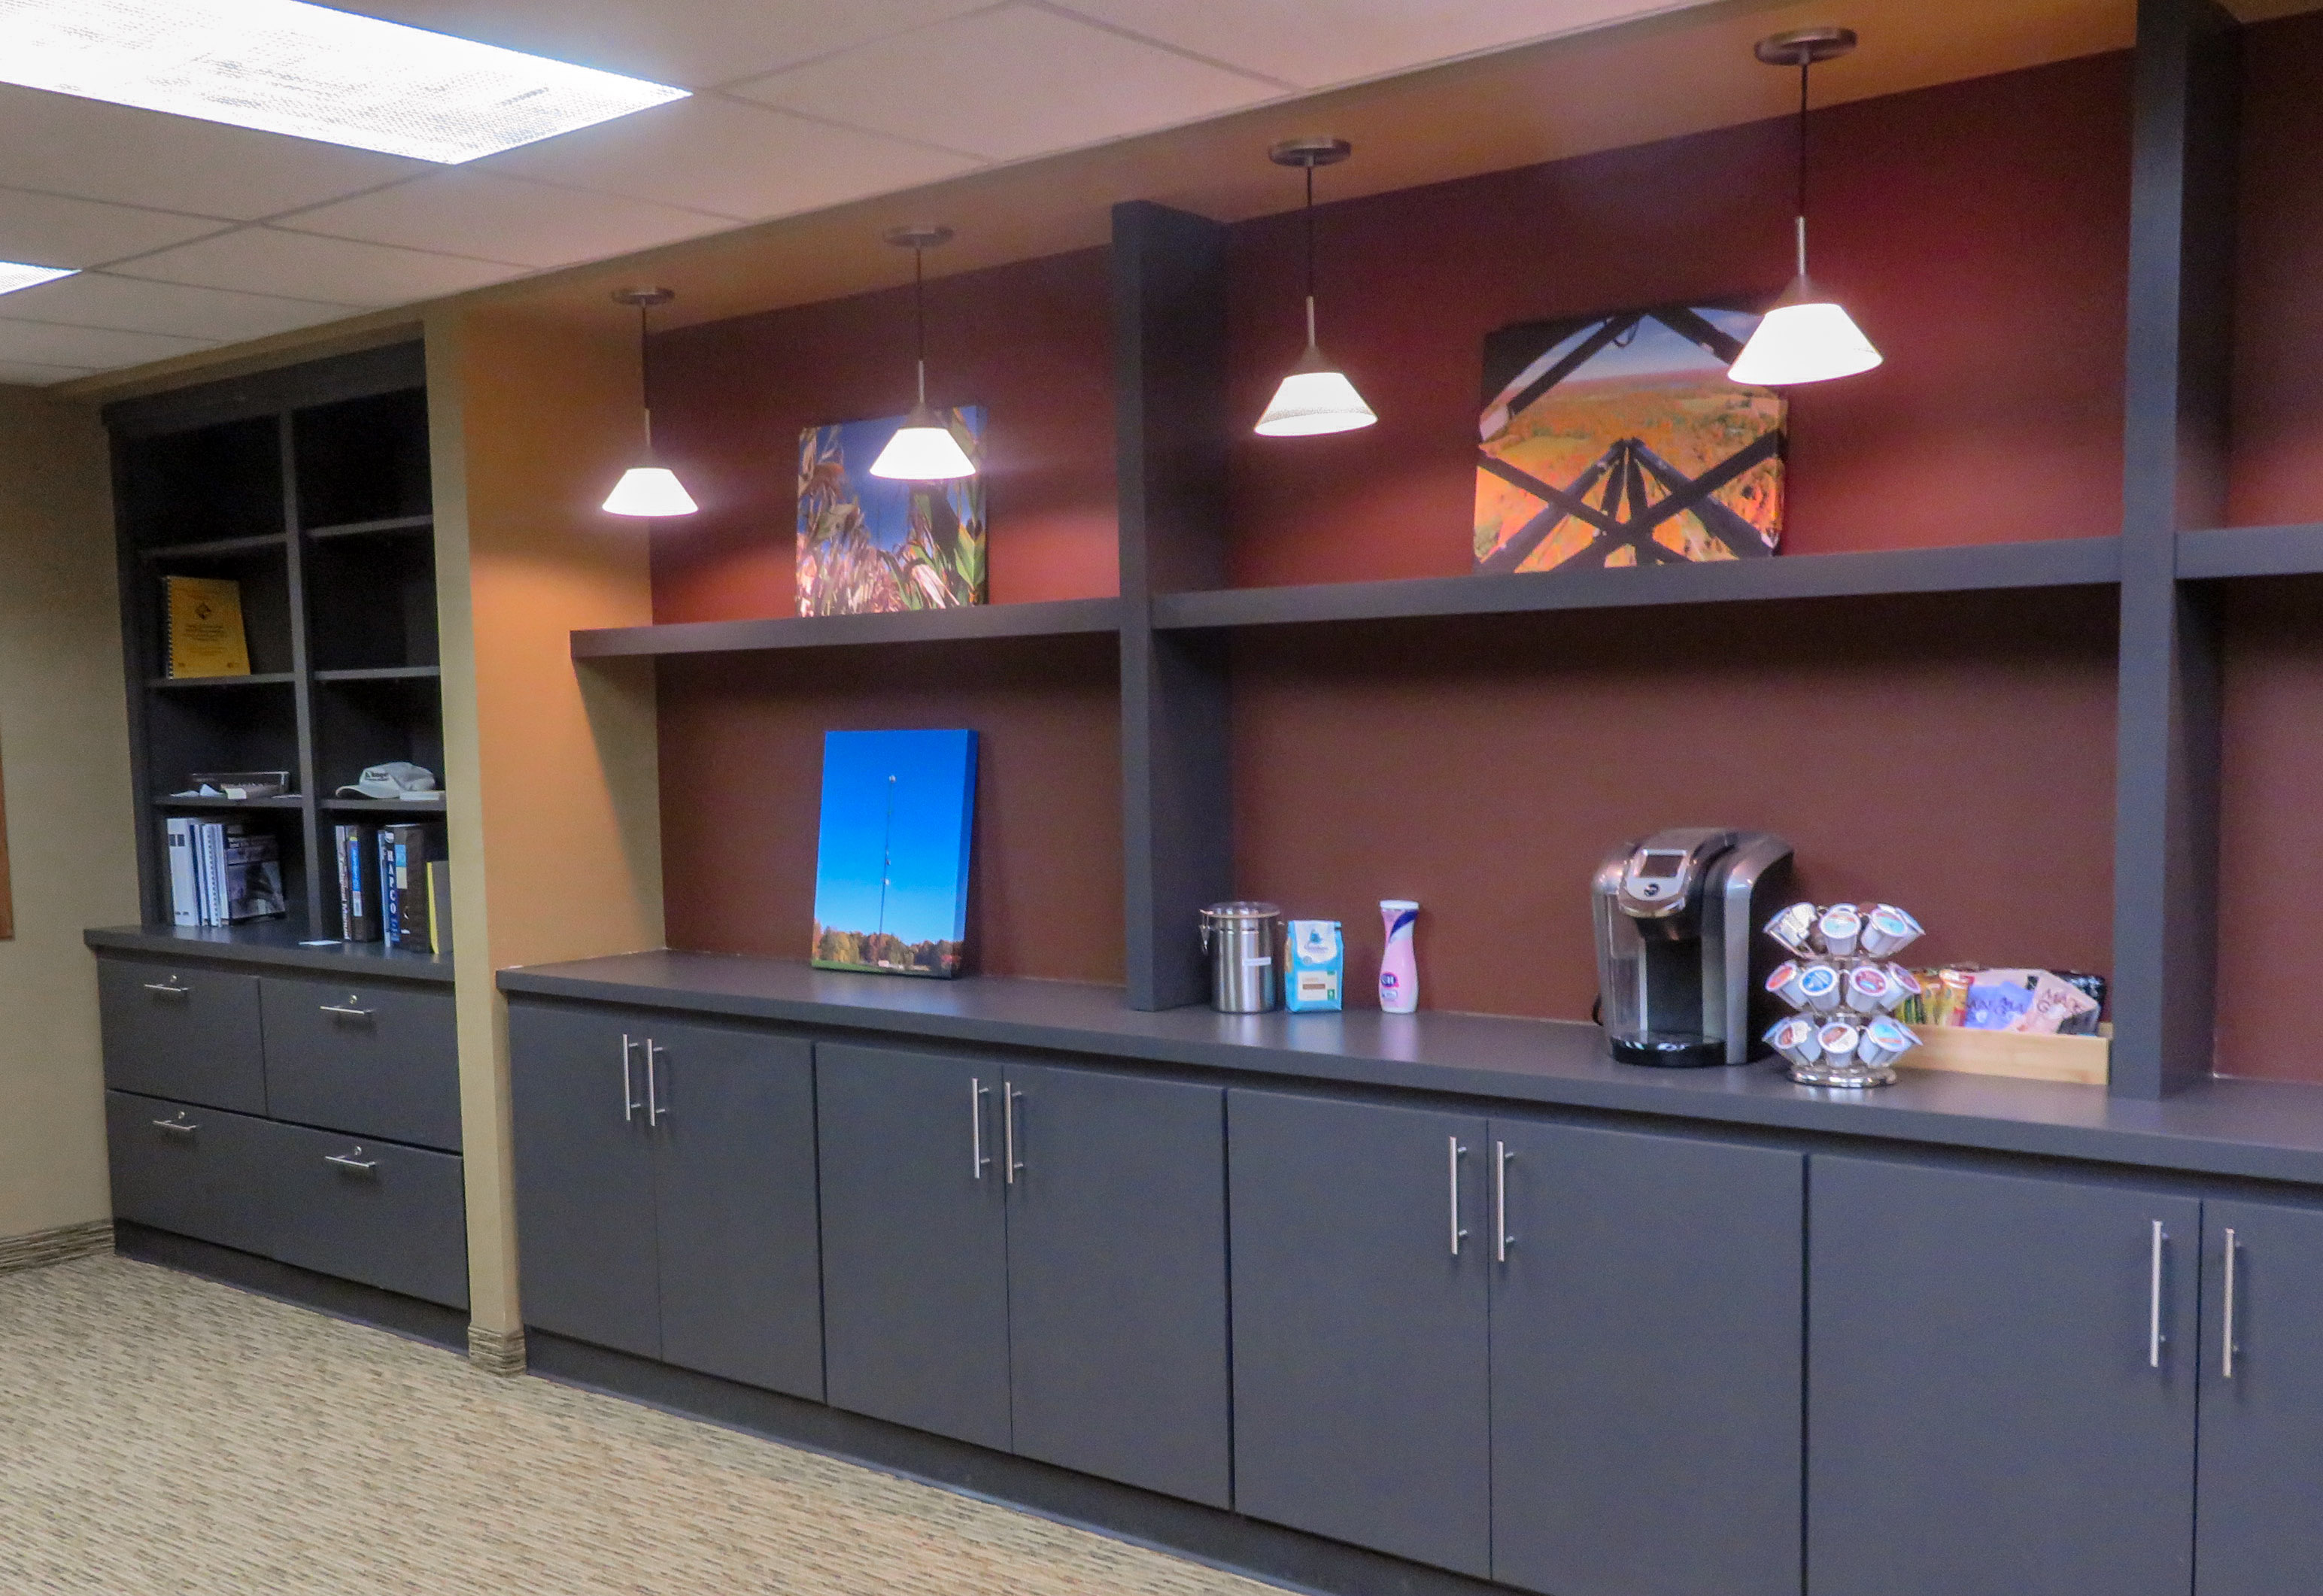 The last photo of the visitor area, which shows a wall with cabinets on the bottom, a coffee station on top of the cabinets, and items on the wall.